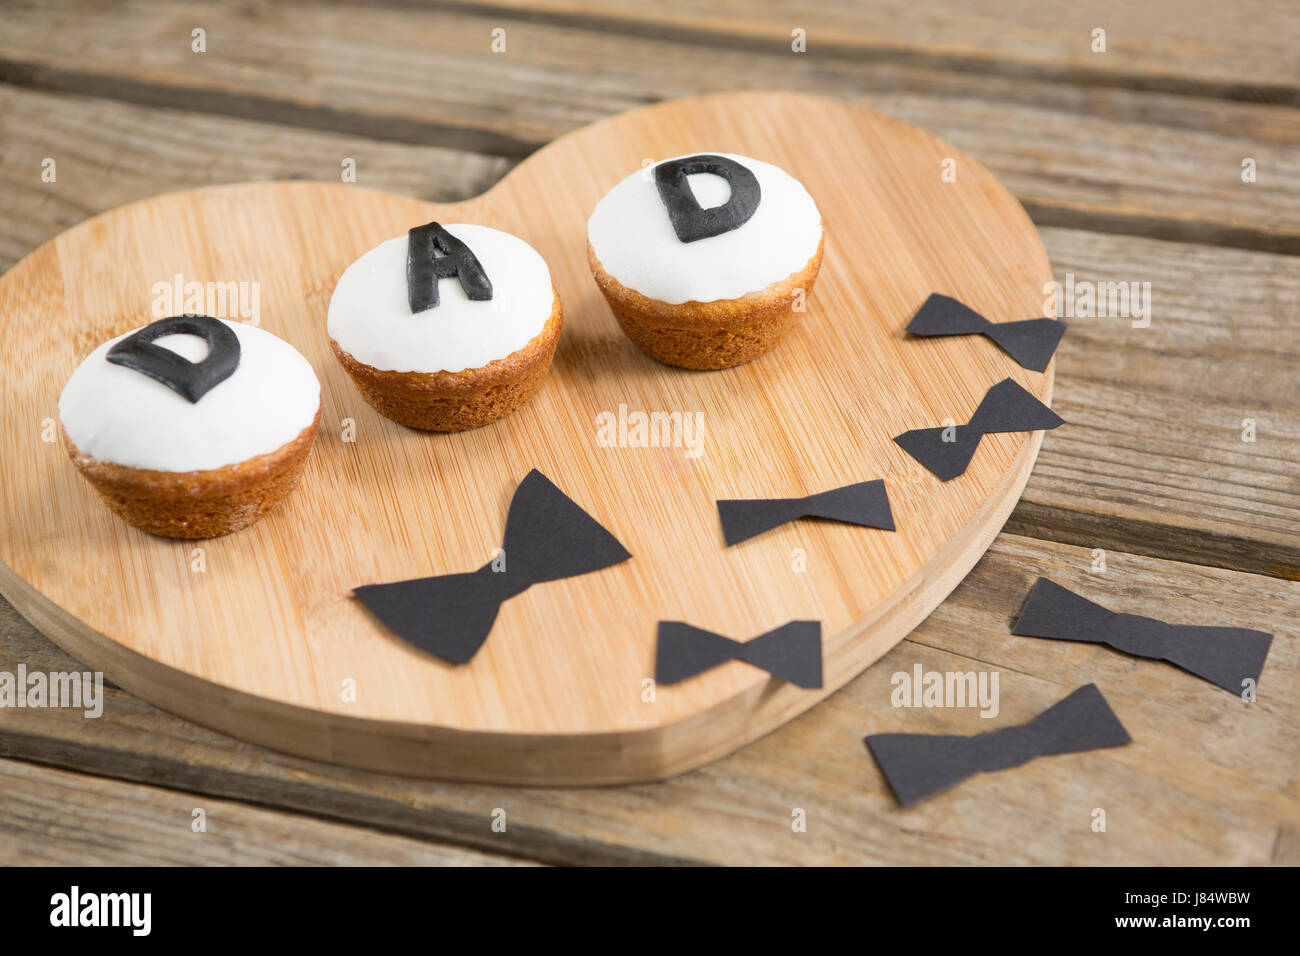 Close up of cupcakes with dad text by bow tie on wooden table - Stock Image